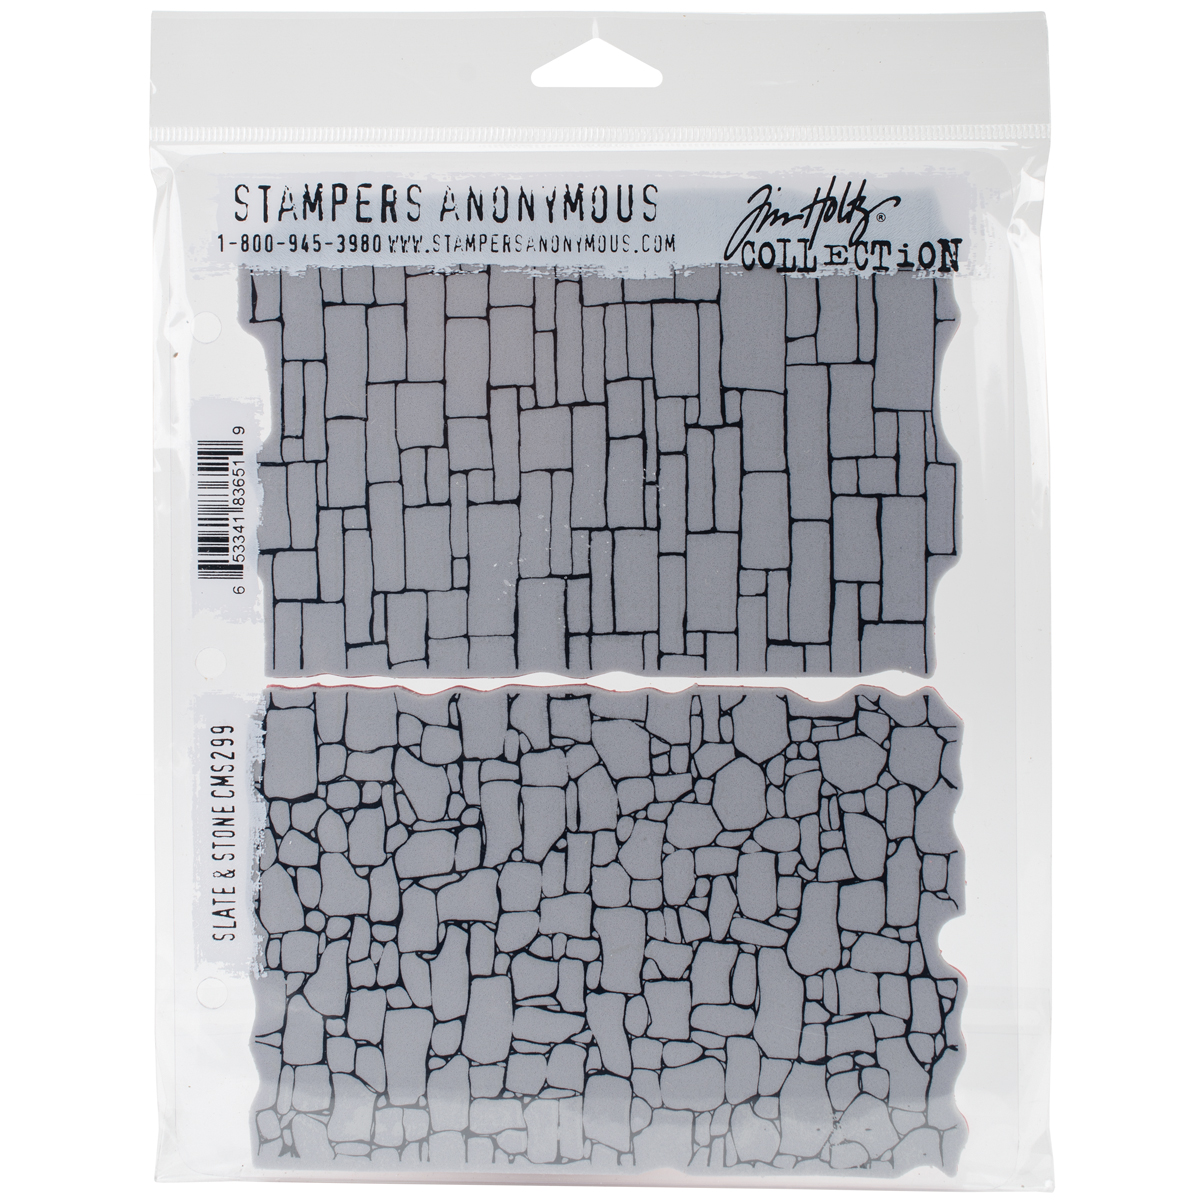 Tim Holtz Cling Stamps 7X8.5-Slate & Stone